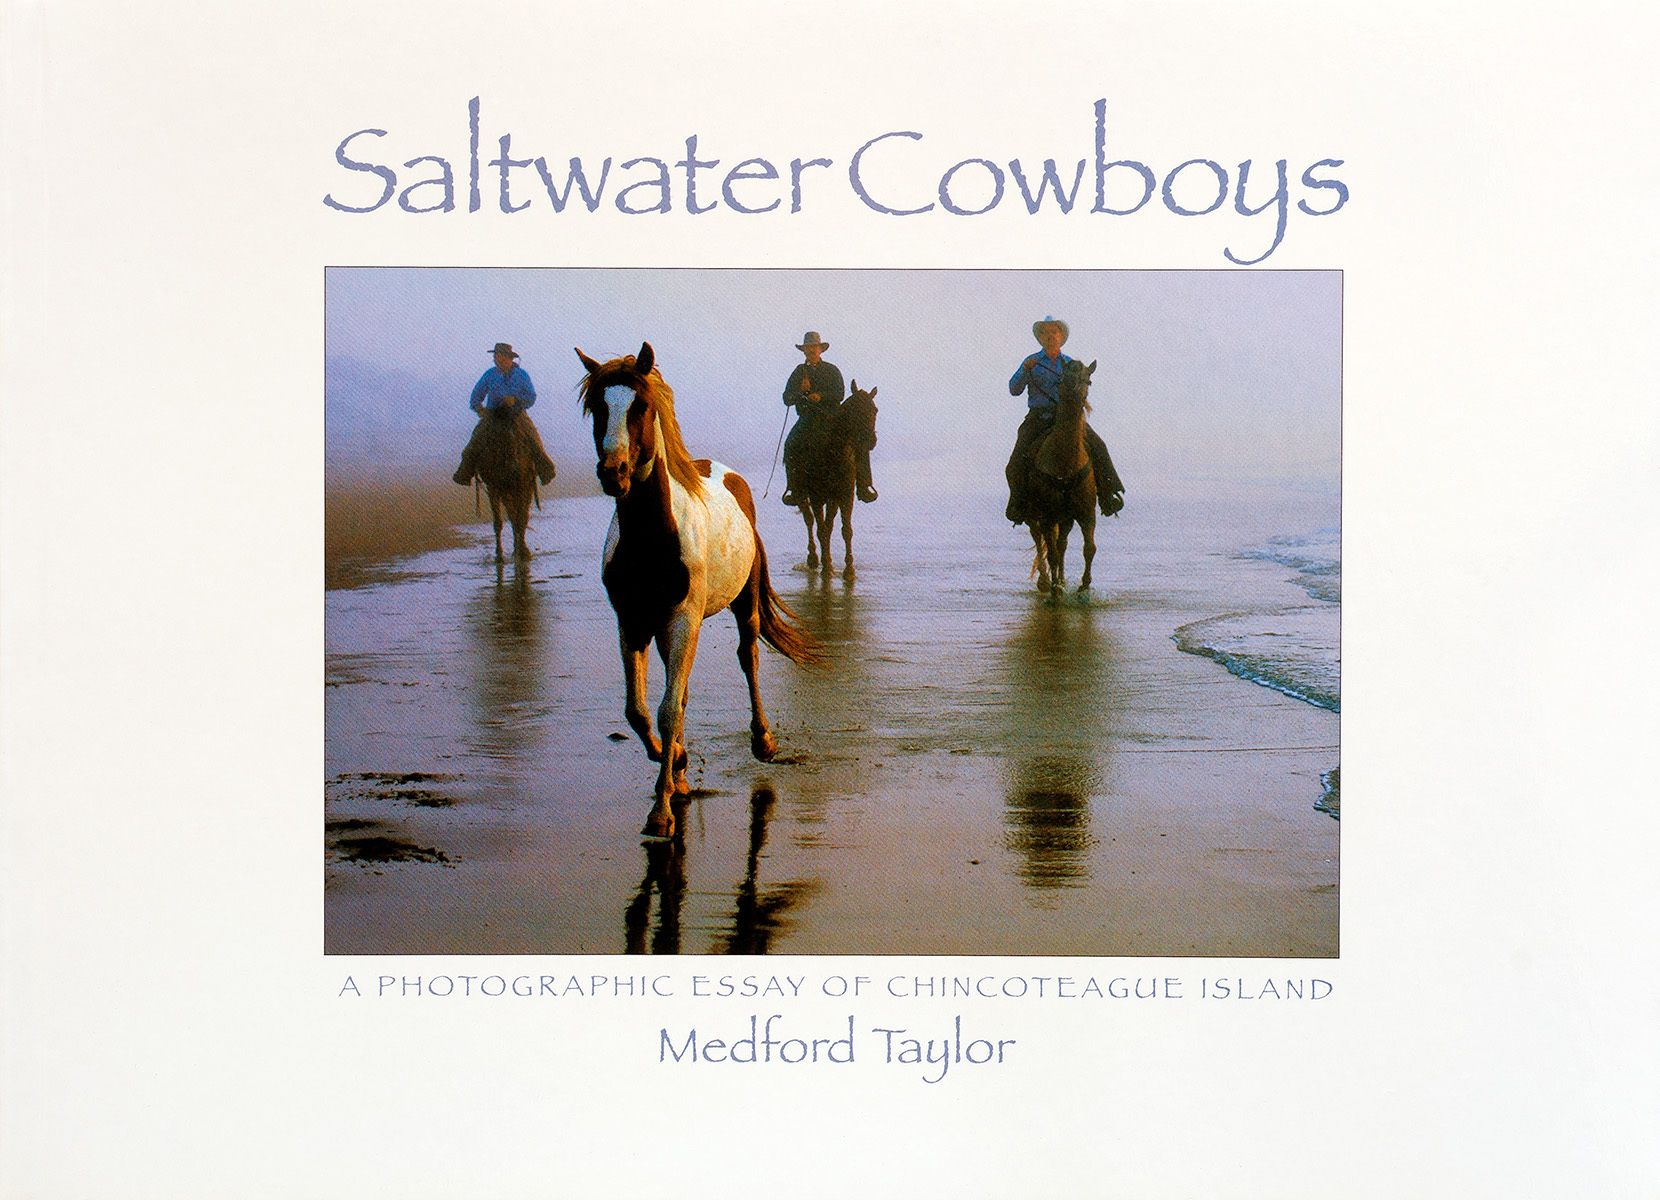 Saltwater Cowboys [cover]